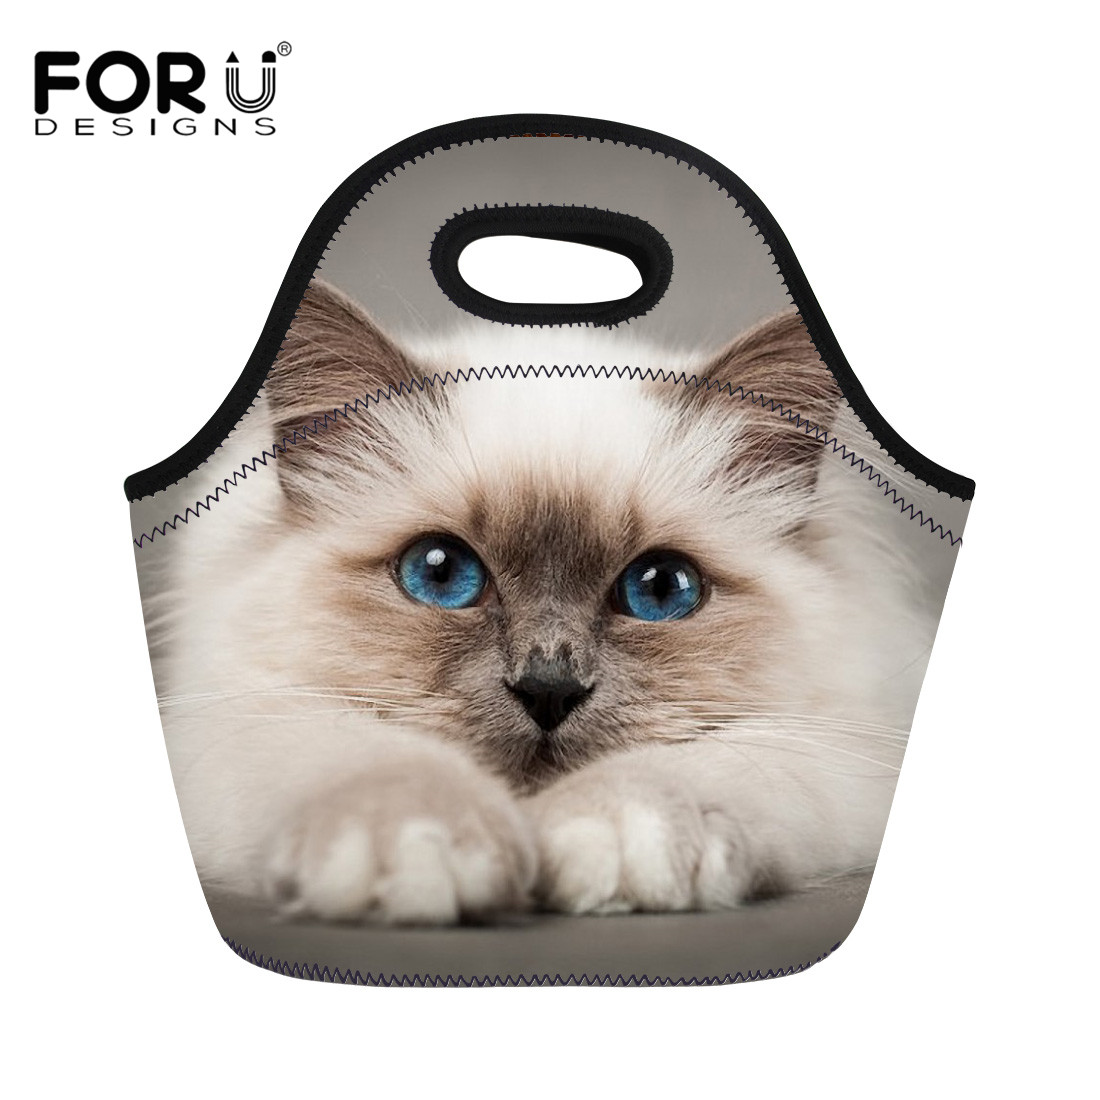 FORUDESIGNS Thermo Lunch Bags Siamese Cat Kawaii for Kids Food Bag Portable Picnic Bag Women Handbag Cooler Insulated Lunch Box